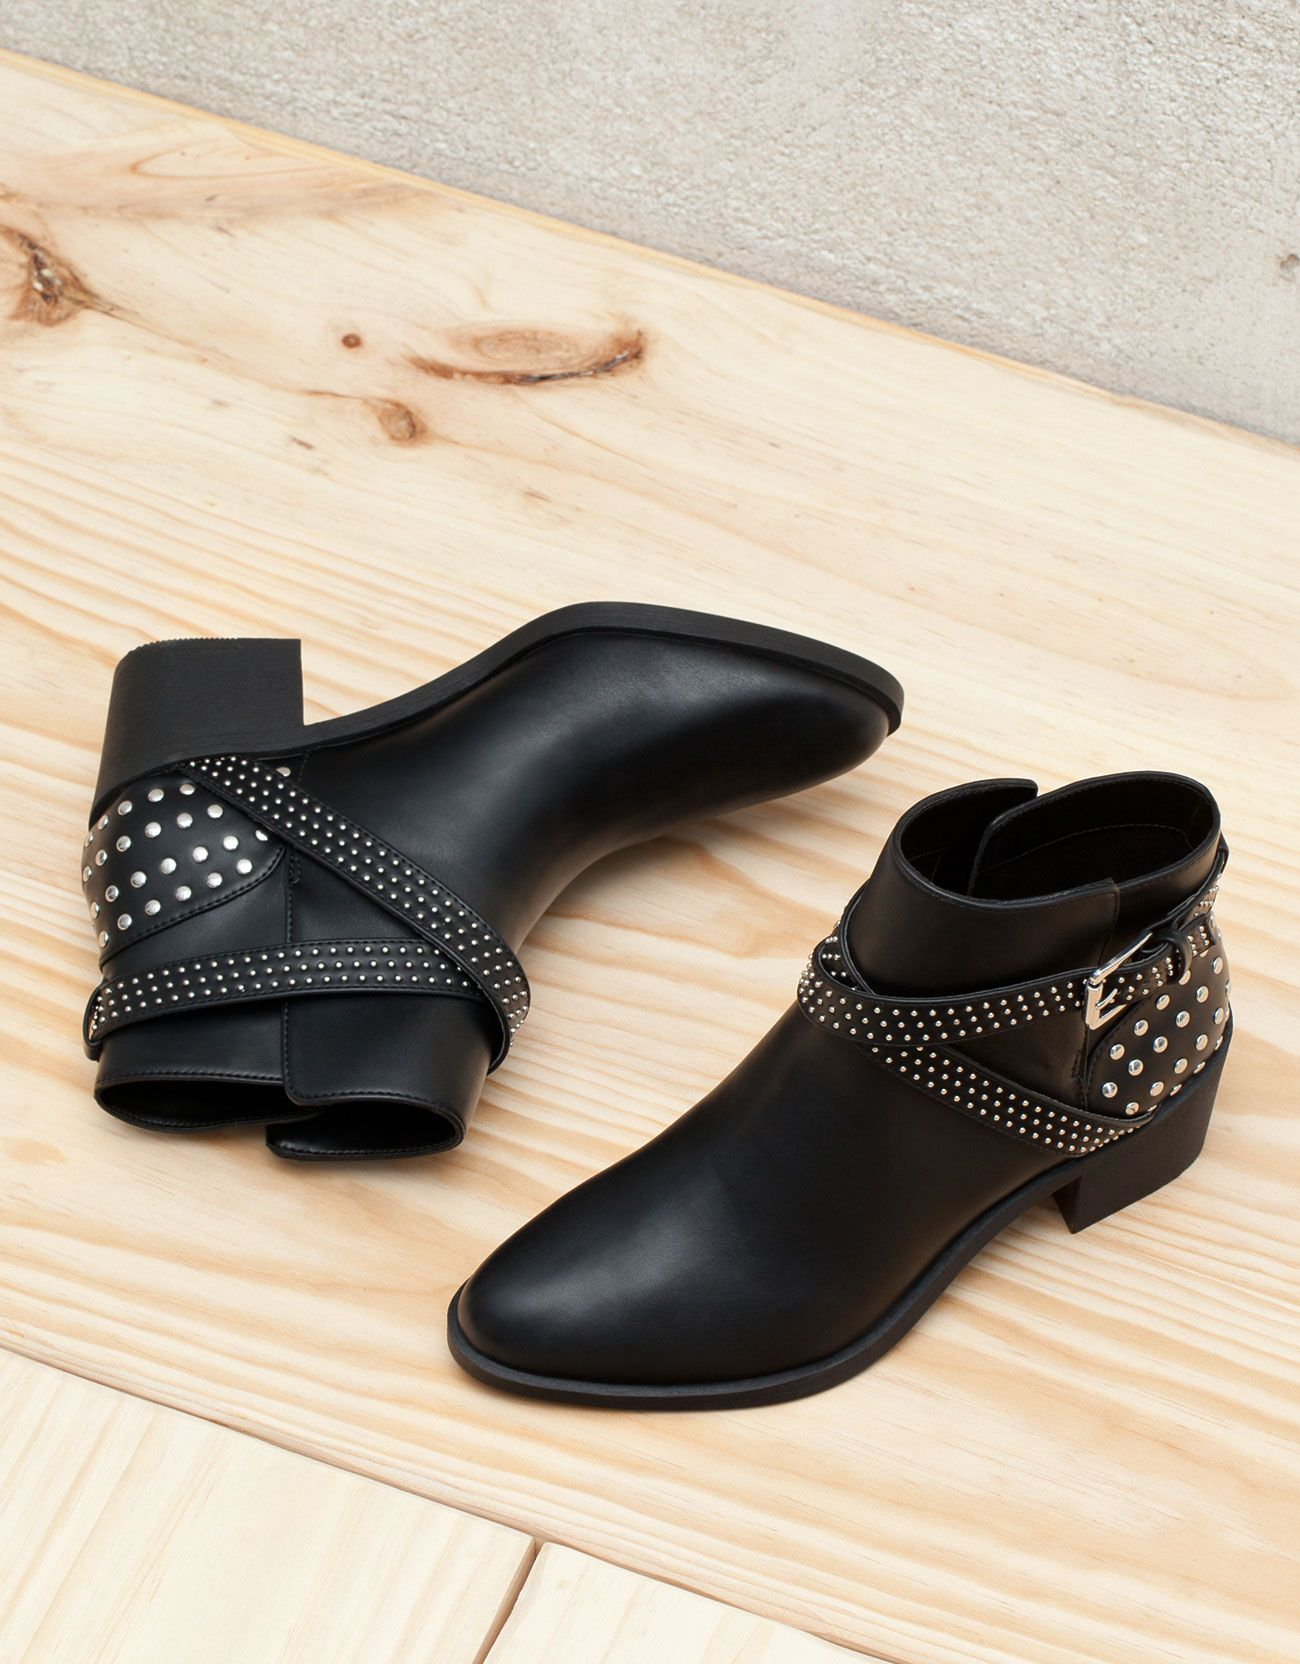 af10b88d6058 Stud detail heeled ankle boots - Shoes - Bershka Taiwan